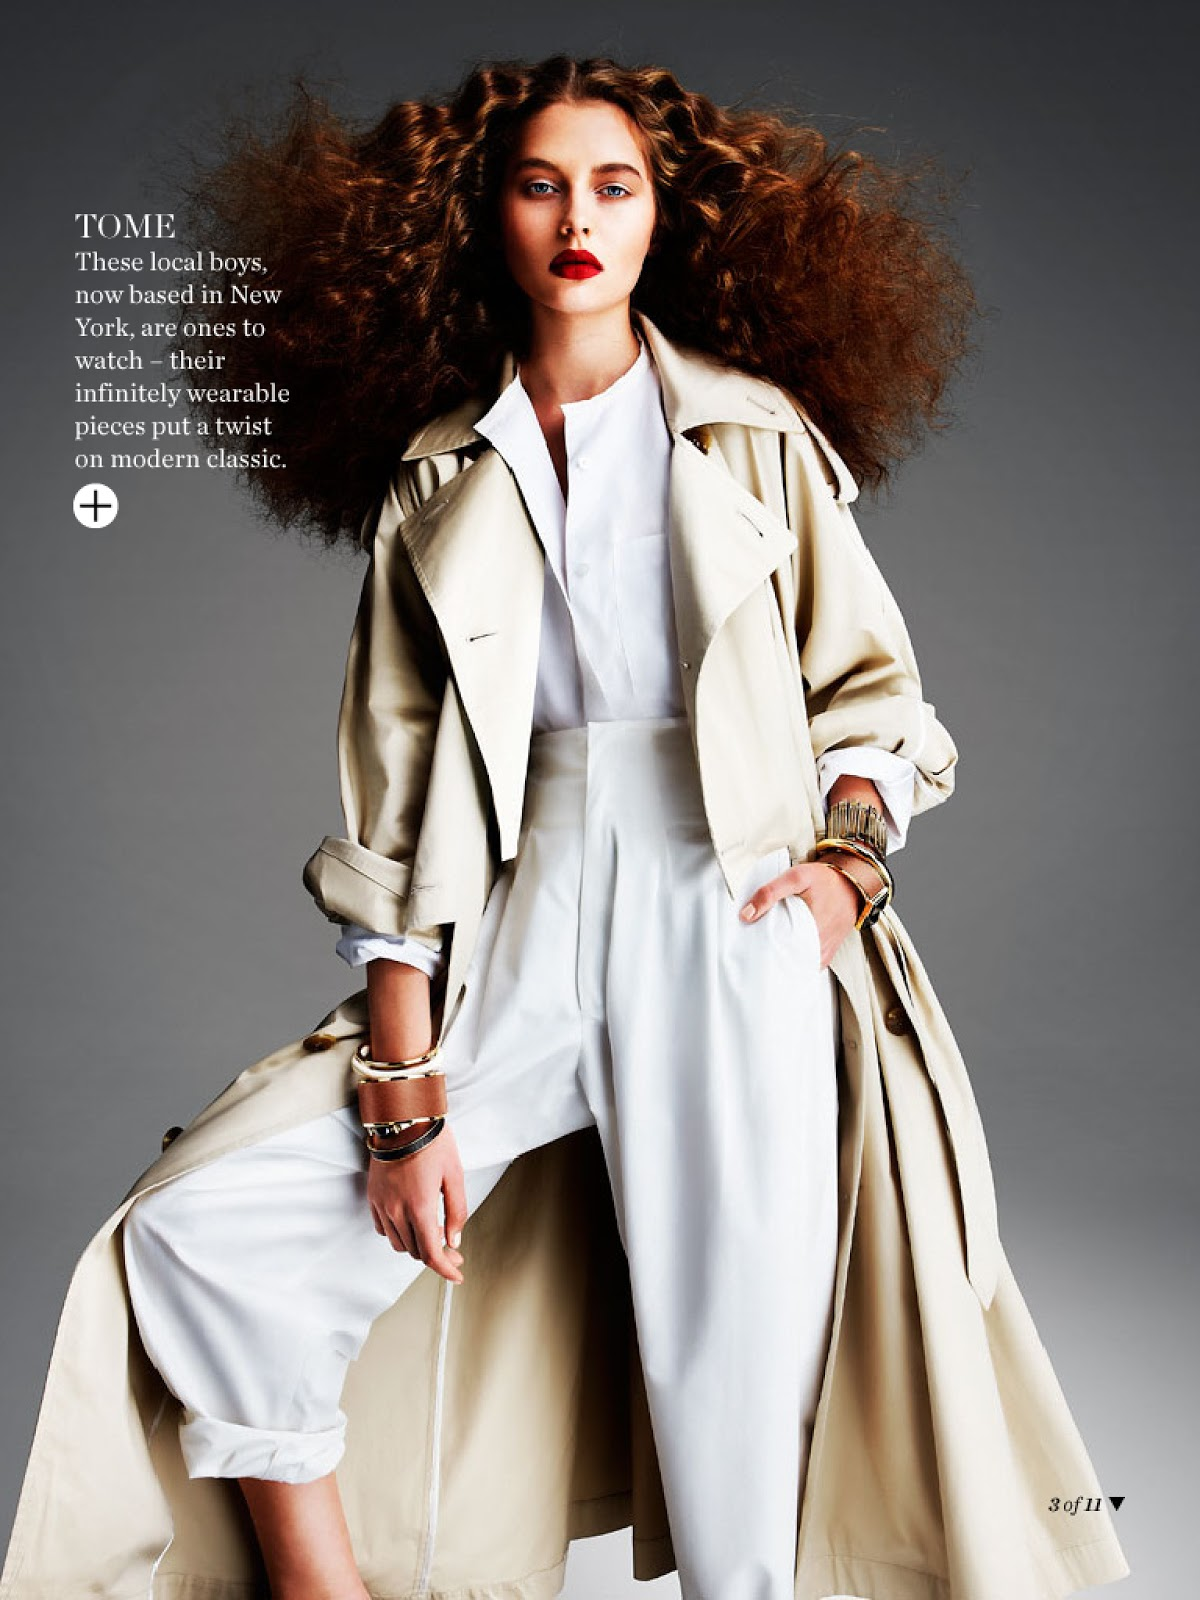 Marie Claire Australia March 2014 via www.fashionedbylove.co.uk